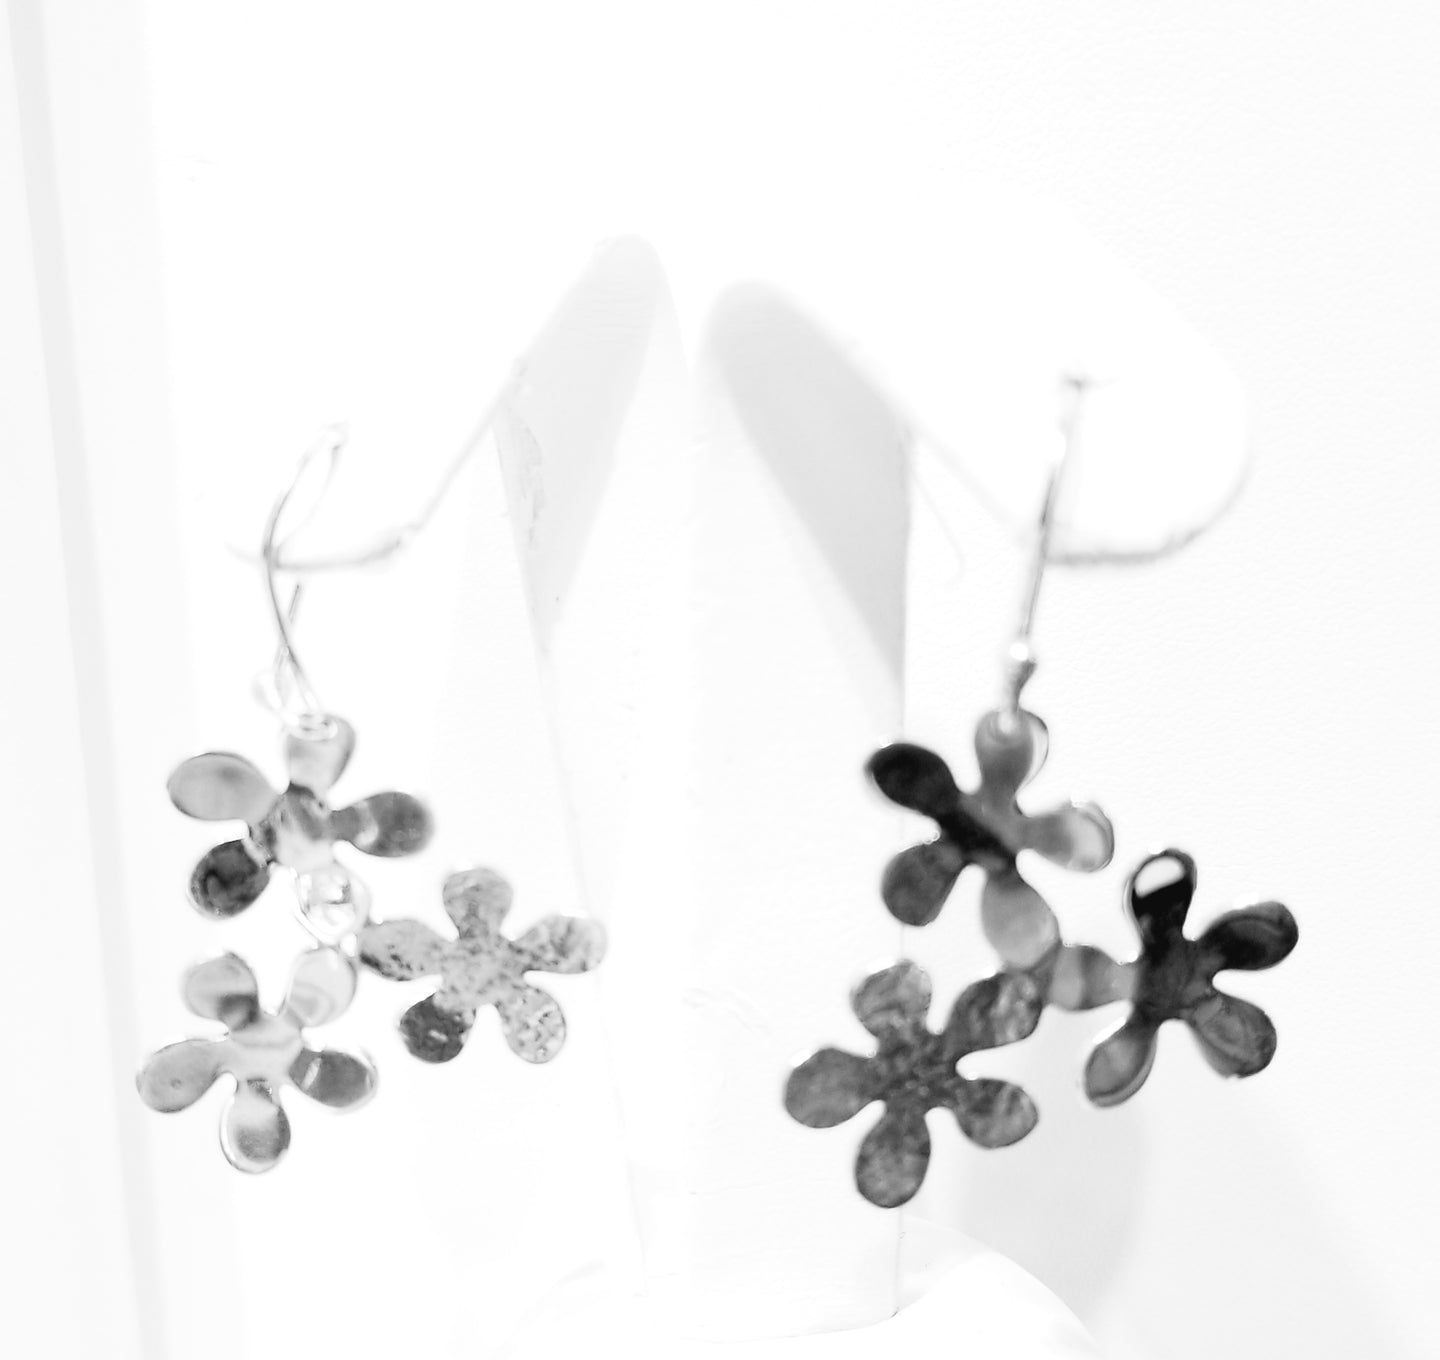 Silver earrings (part of the set)